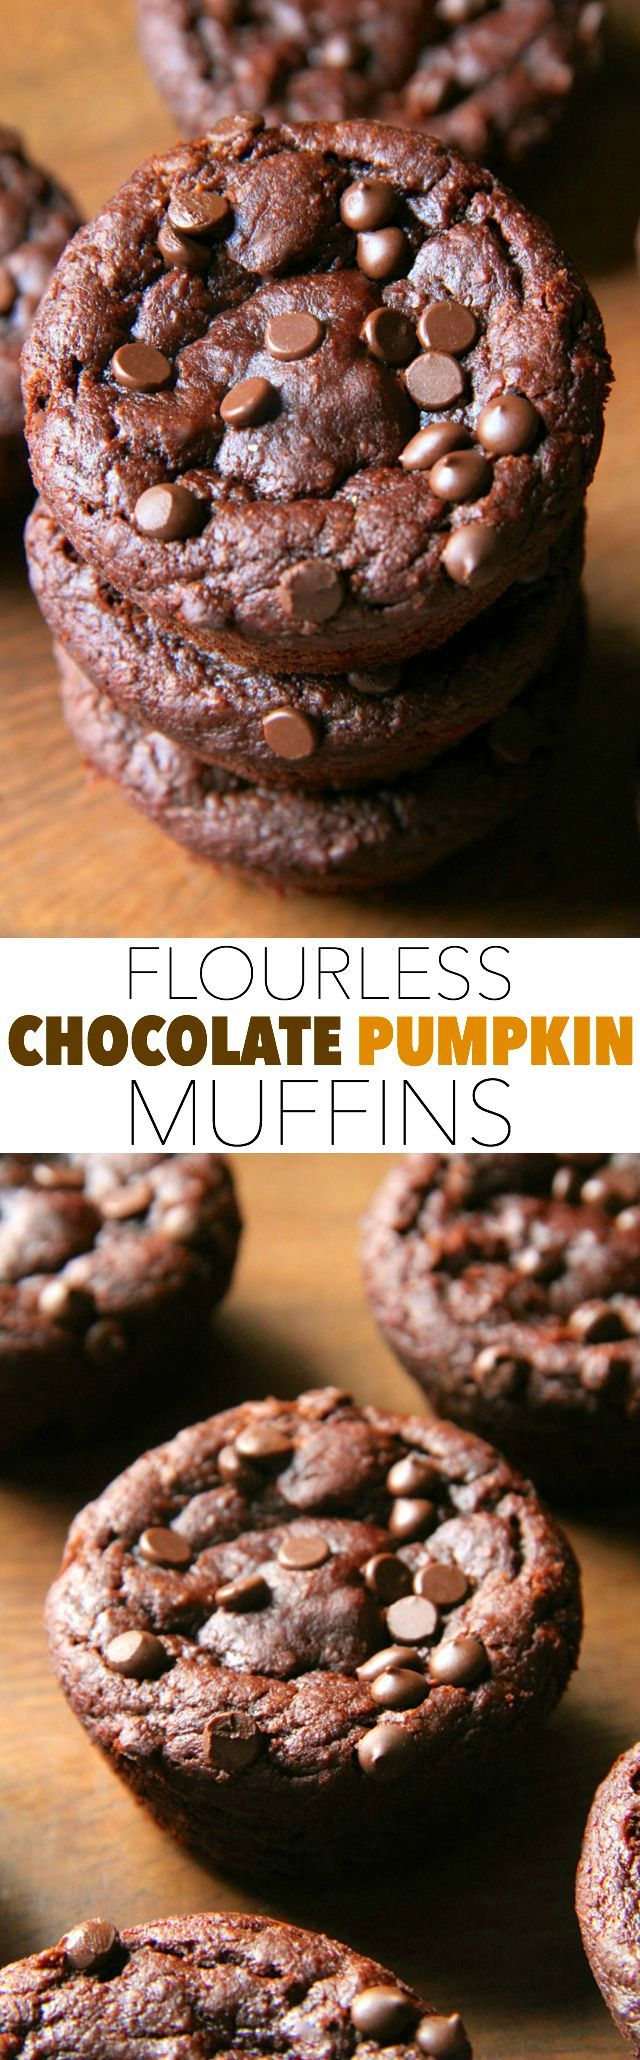 Flourless Chocolate Pumpkin Muffins -- gluten free, grain free, oil free, dairy free, refined sugar free, but so soft and delicious that you'd never be able to tell! || fall